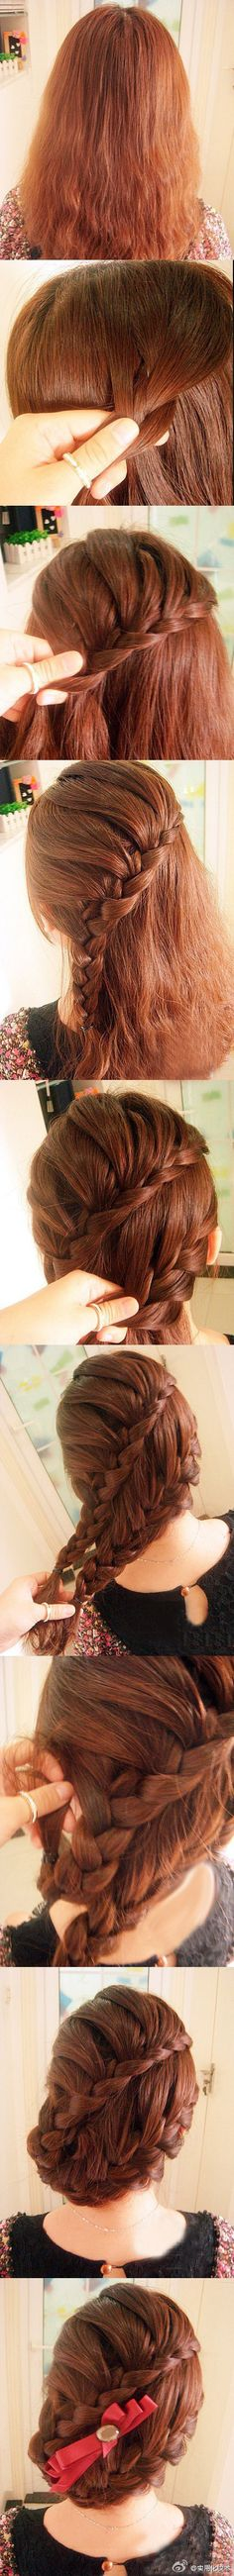 I think i'd either change or take out the bow, but otherwise, pretty hair.